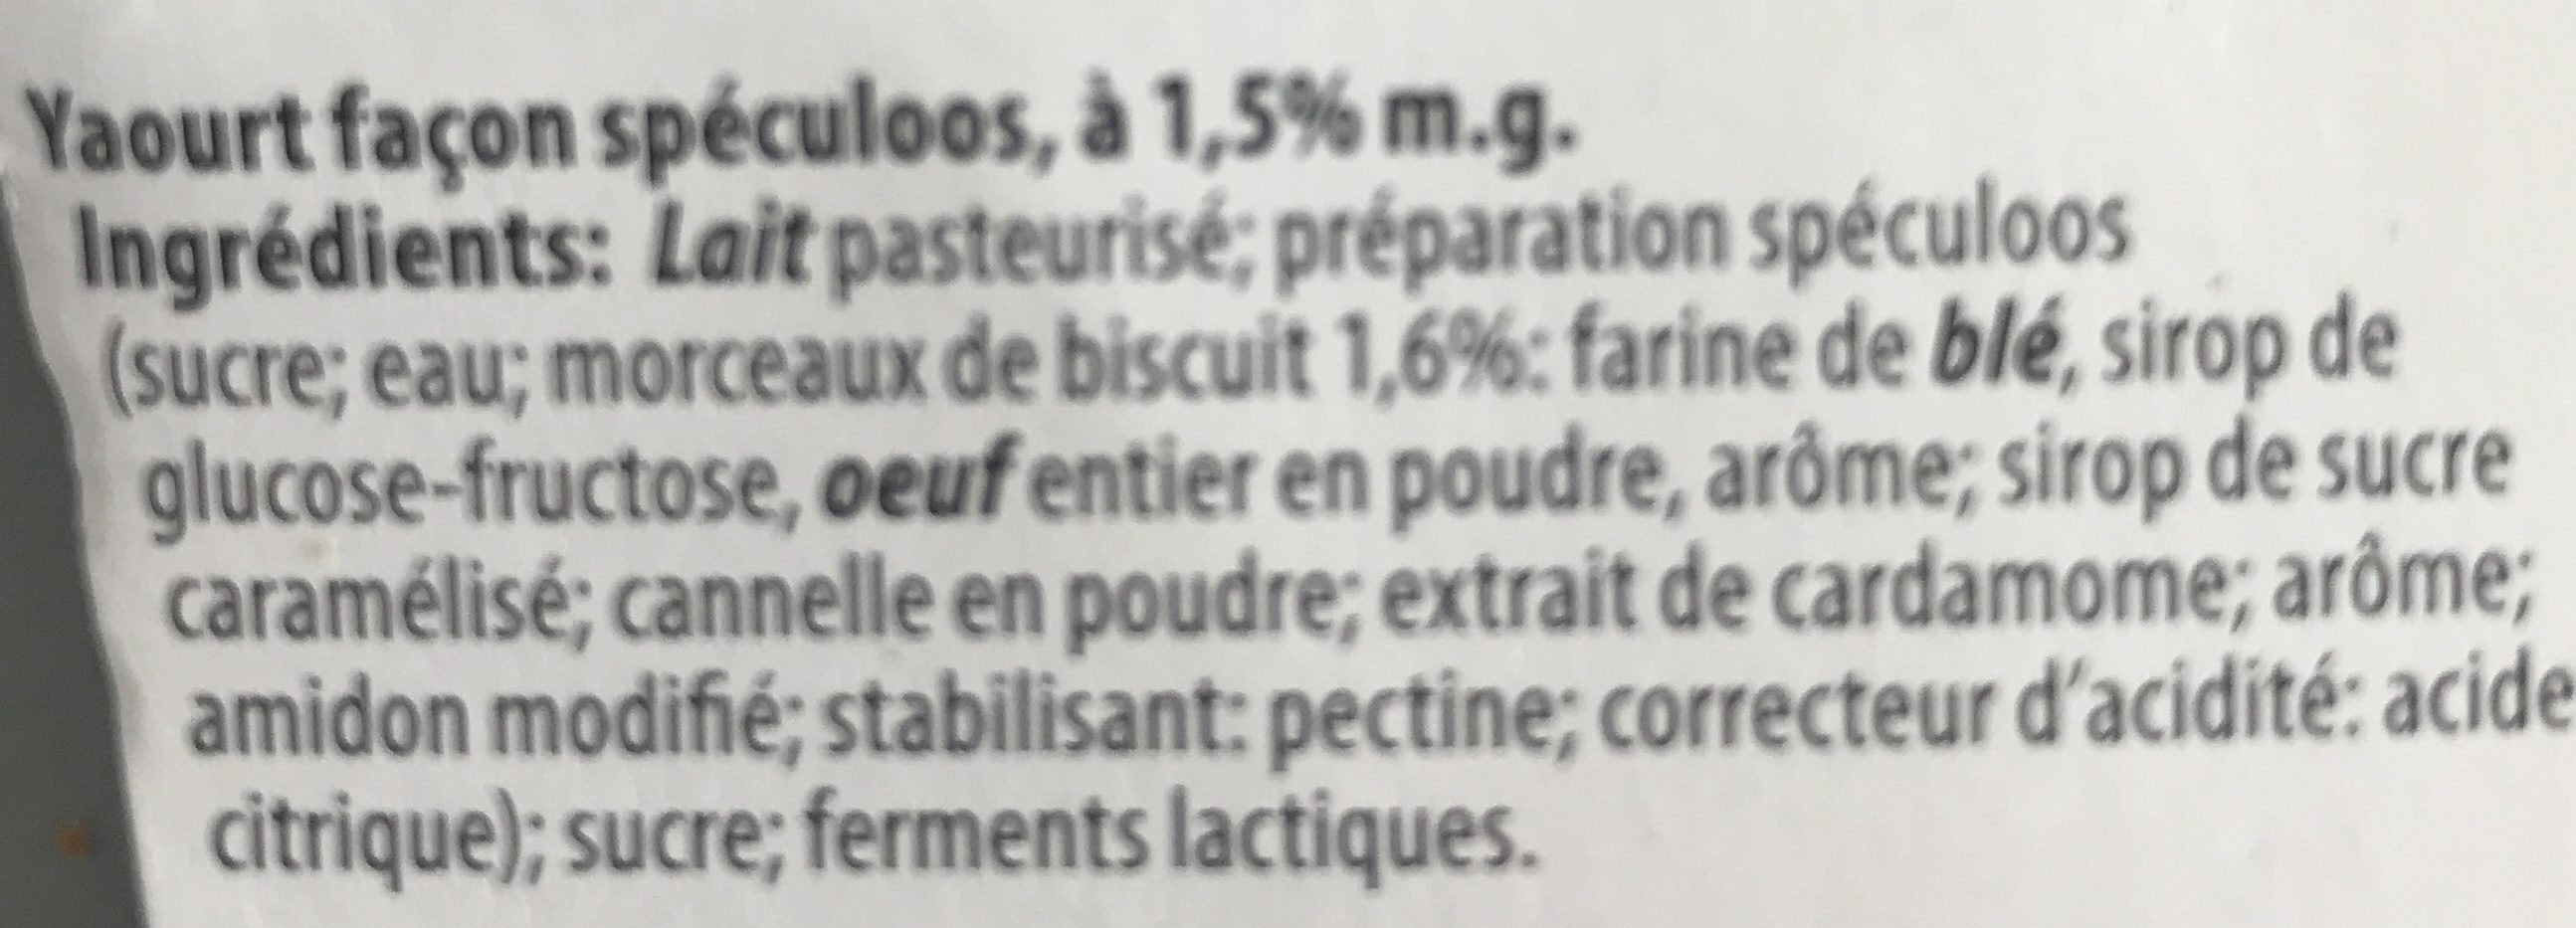 Yaourt du Luxembourg - Spéculoos - Ingredients